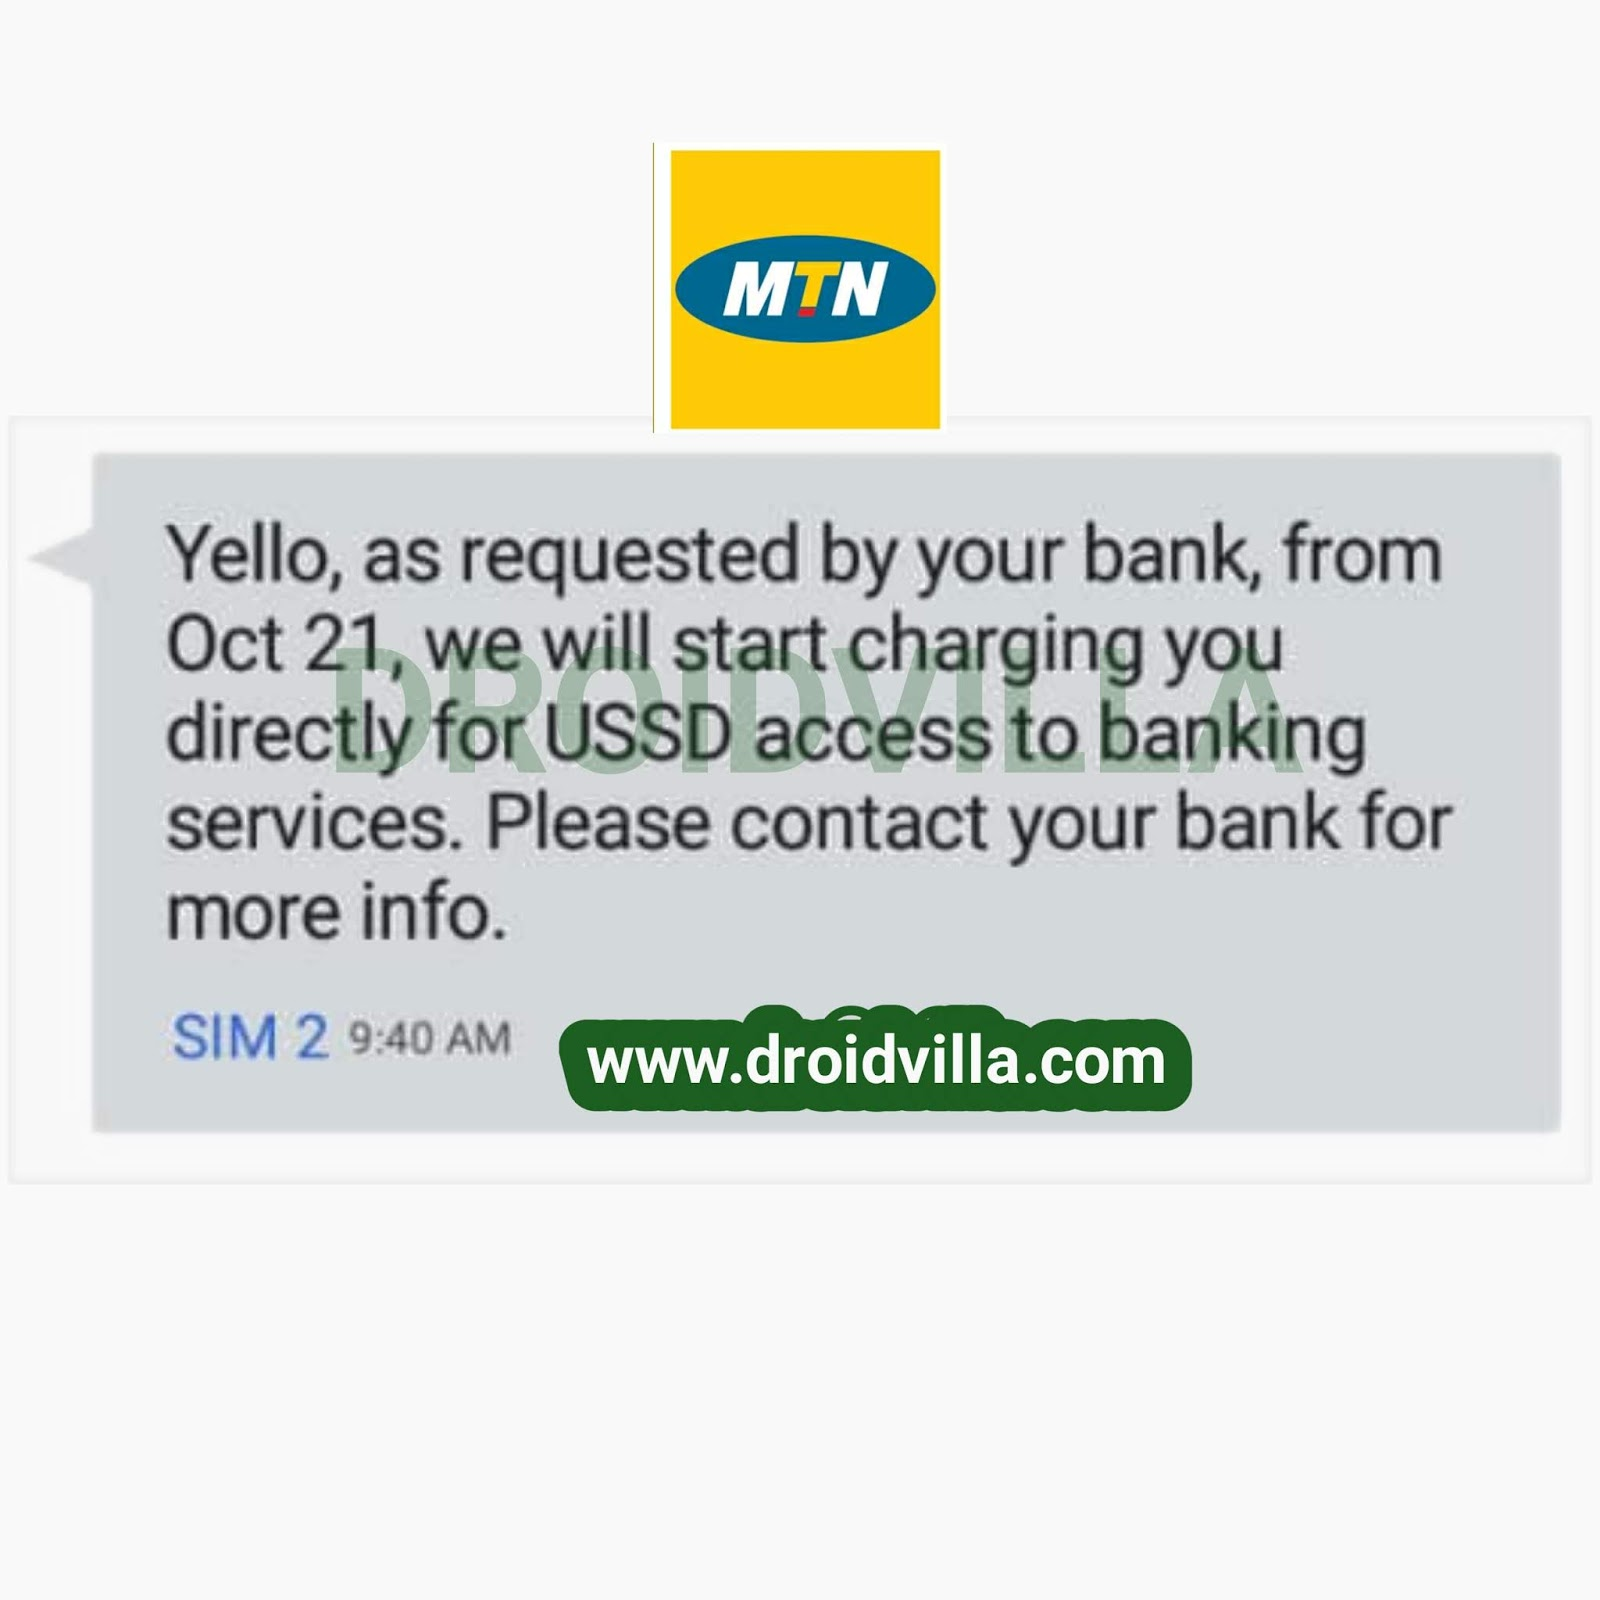 Shocking: MTN Nigeria to start charging you directly for USSD access to banking services from Oct 21st